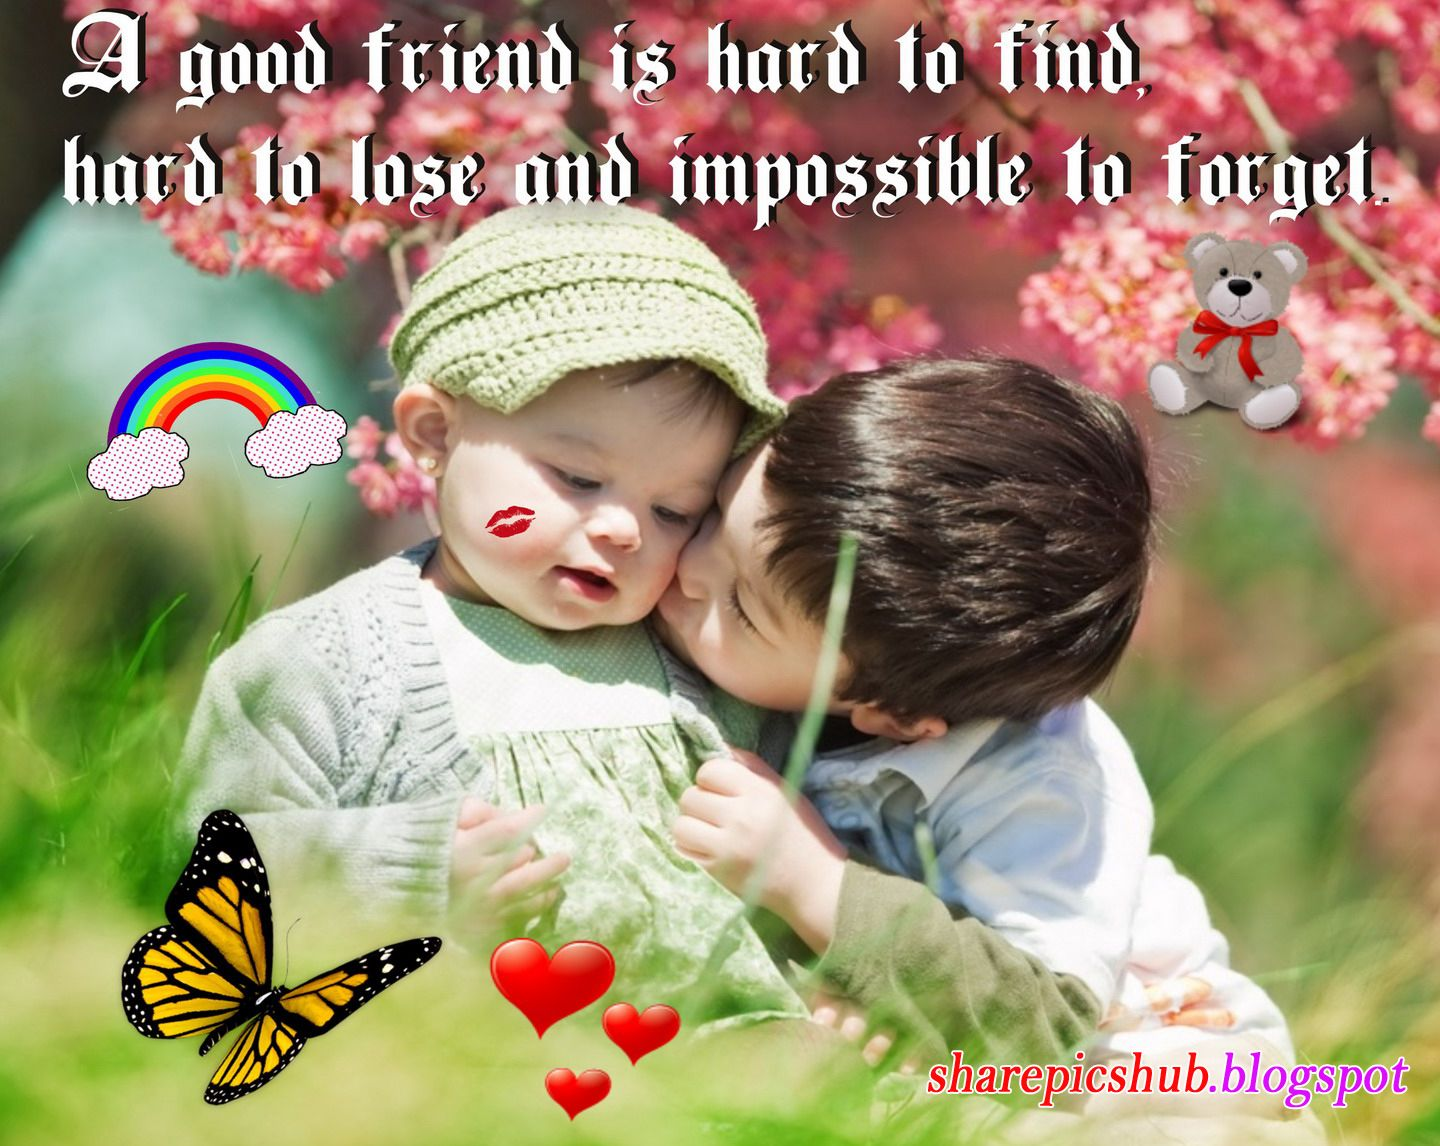 funny friendship quotes for facebook Beautiful